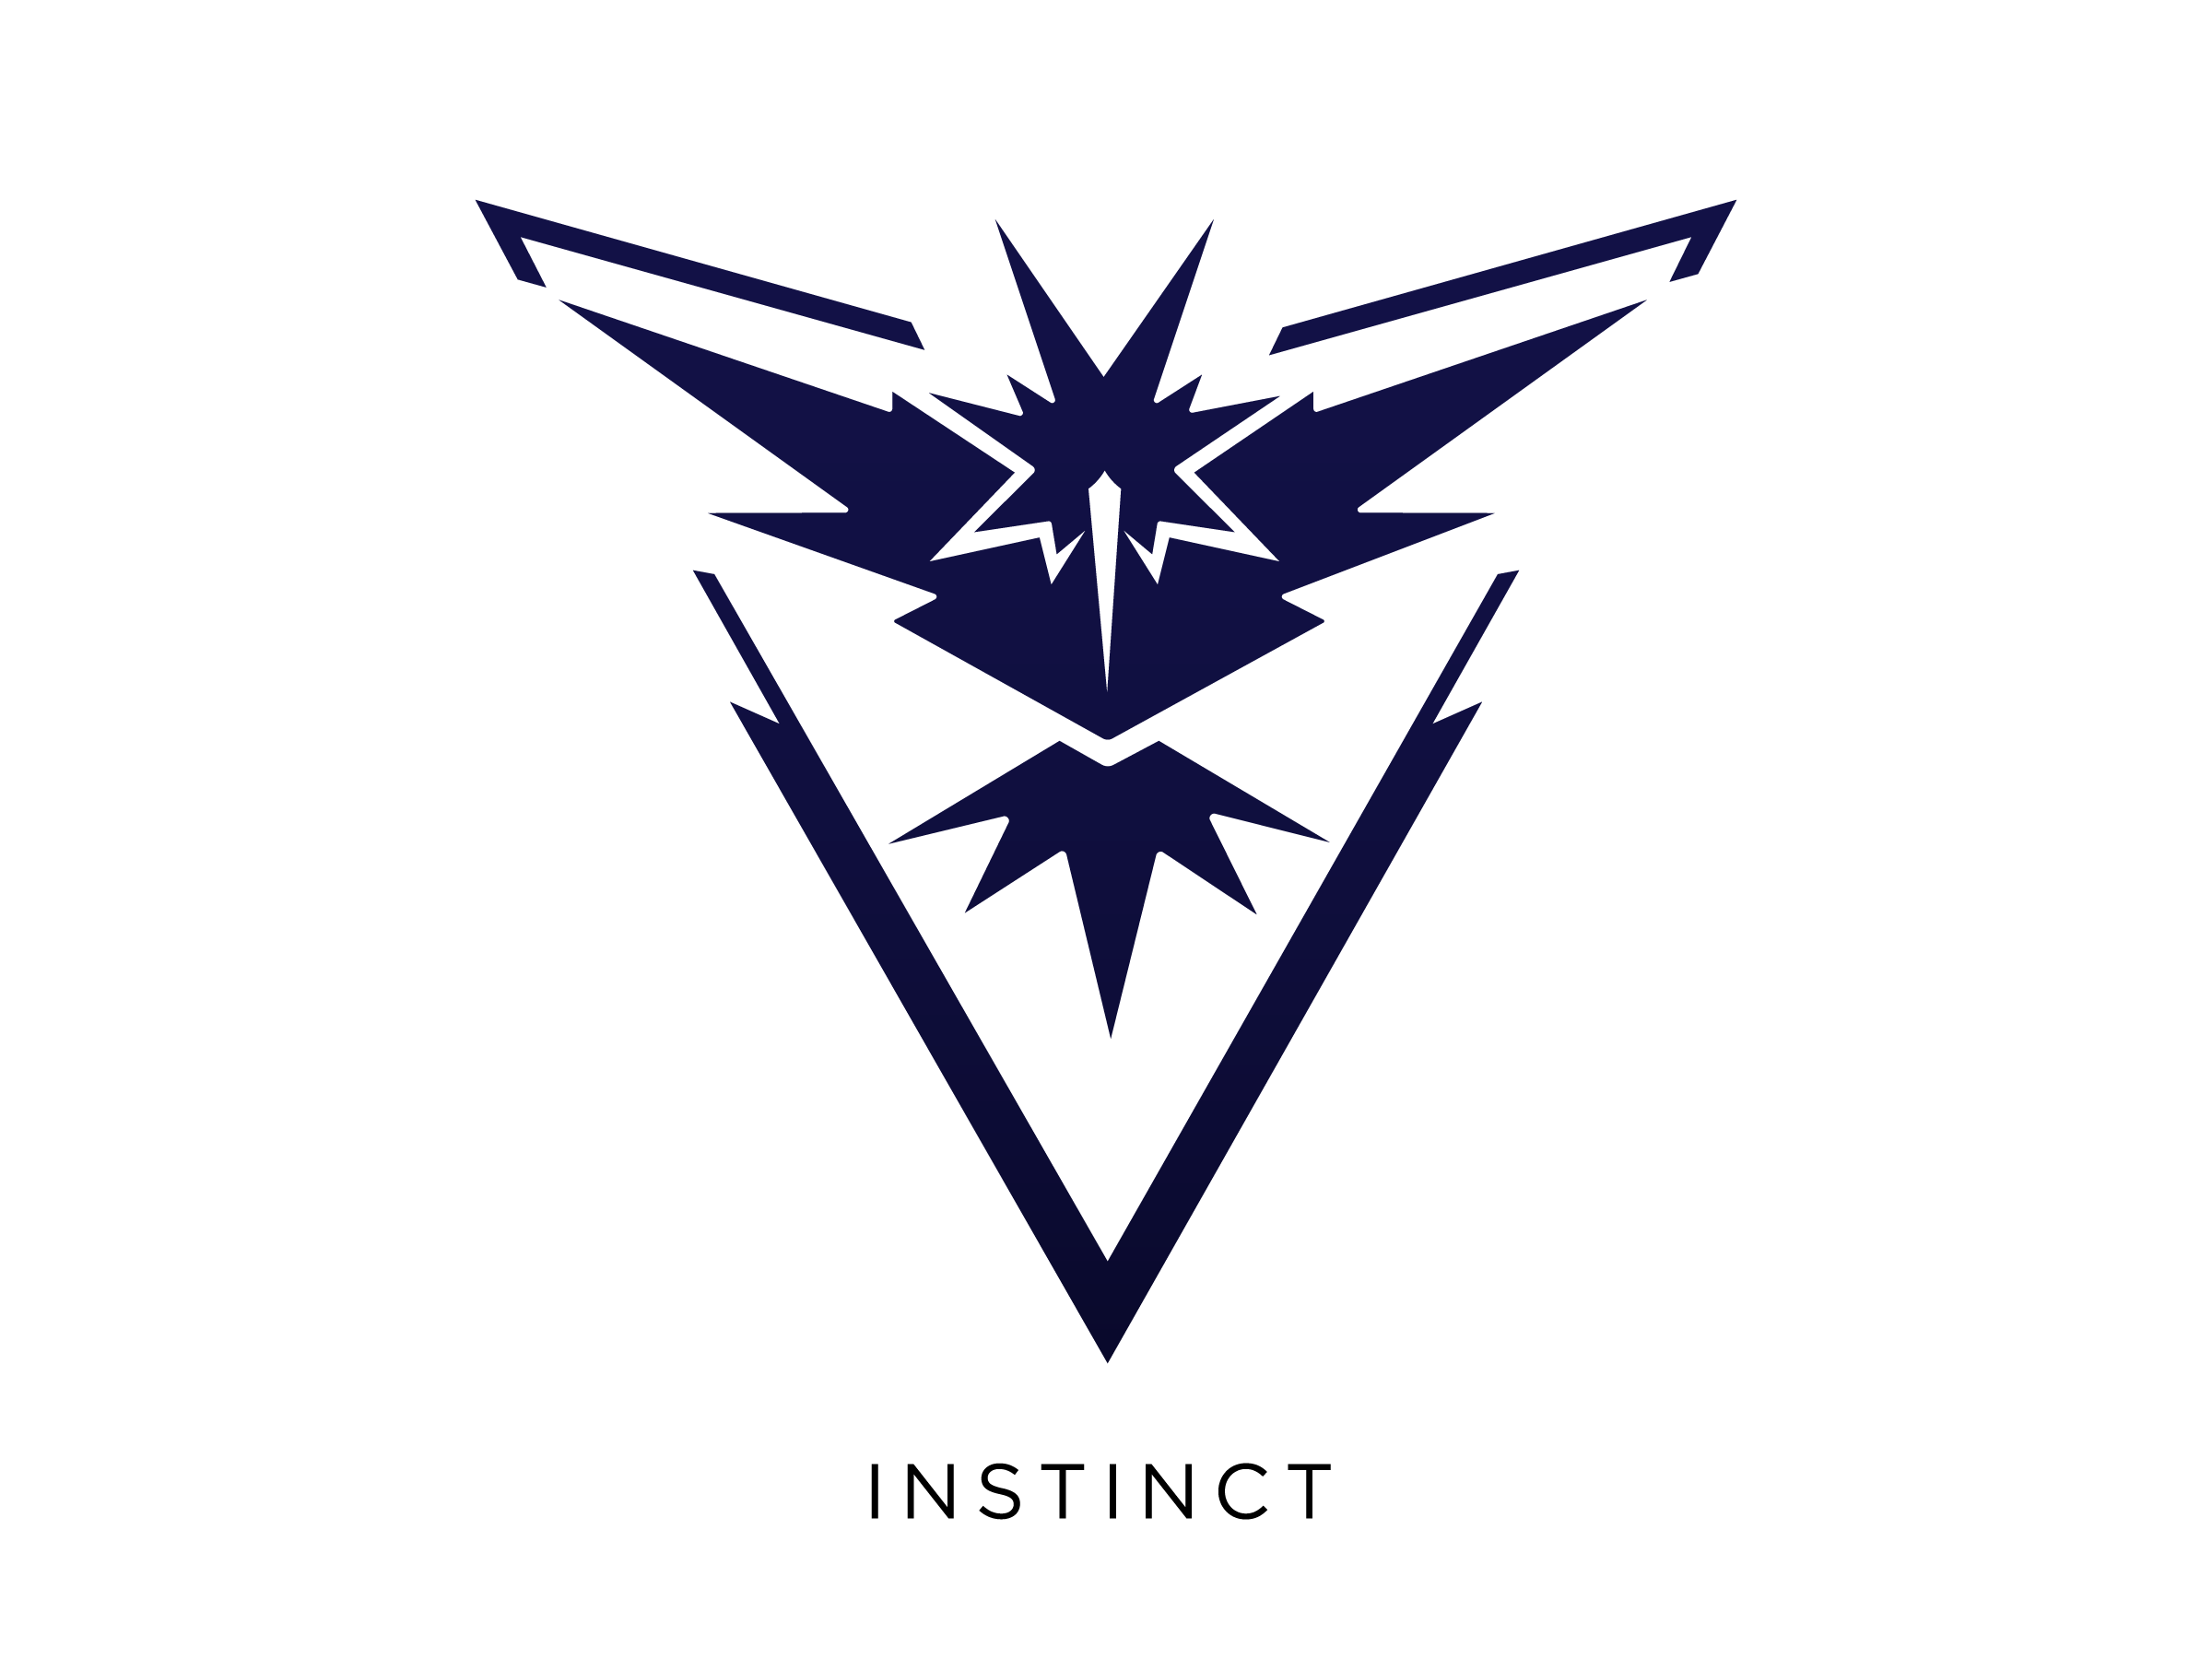 Pokemongo team logos instinct - Pokemon Go Logo Vector PNG